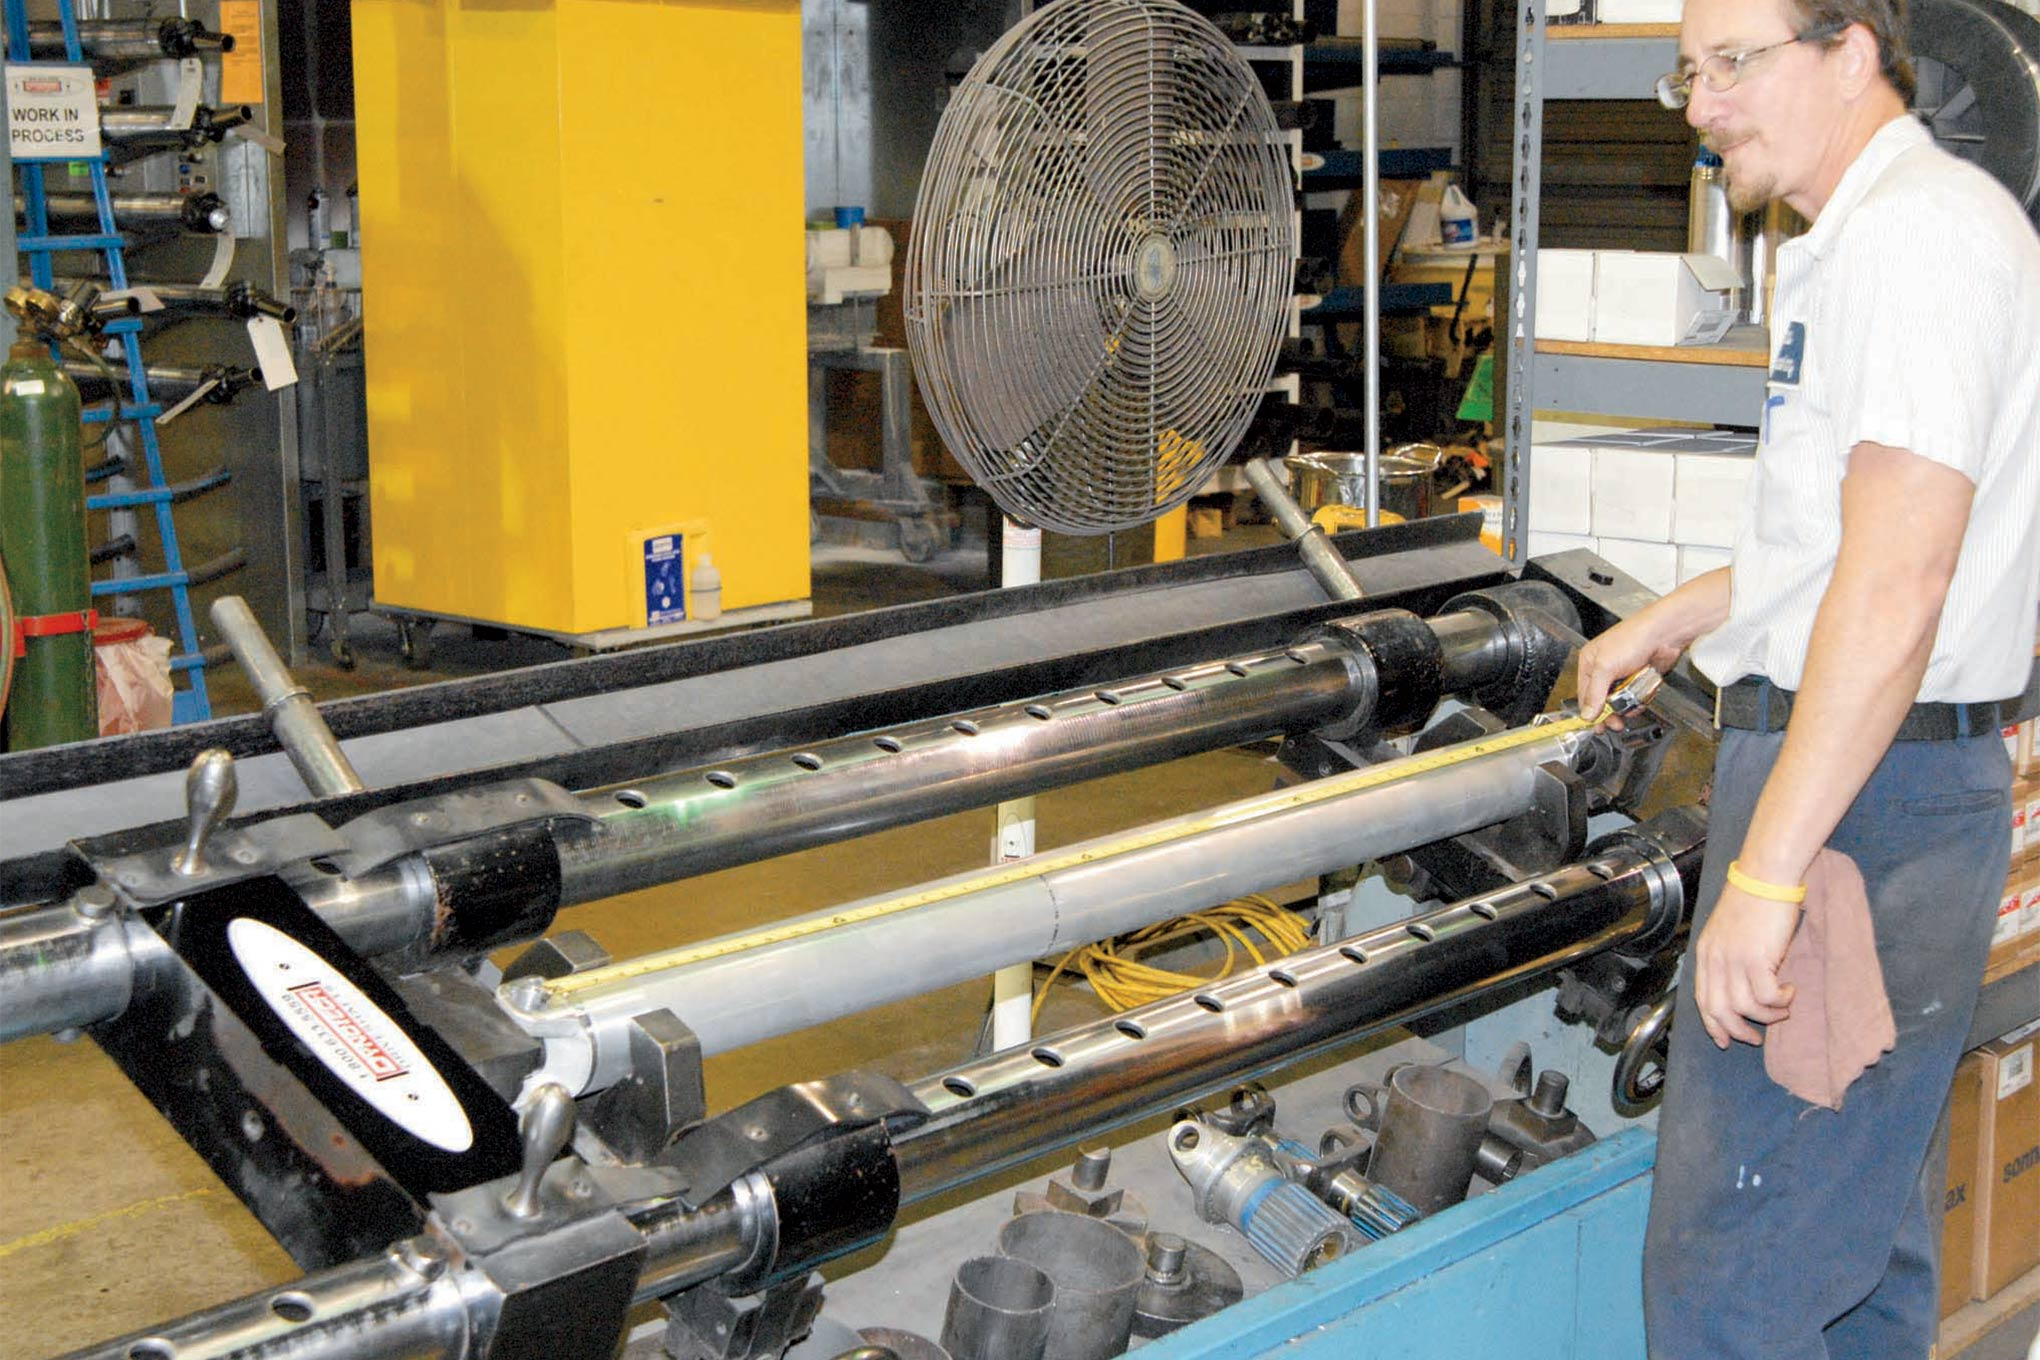 Dynotech's driveshafts are custom made and guaranteed vibration-free, and they stand by their work 100 percent. All of their driveshafts are assembled by hand while using modern technologies, such as computer welding and high-speed balancing.